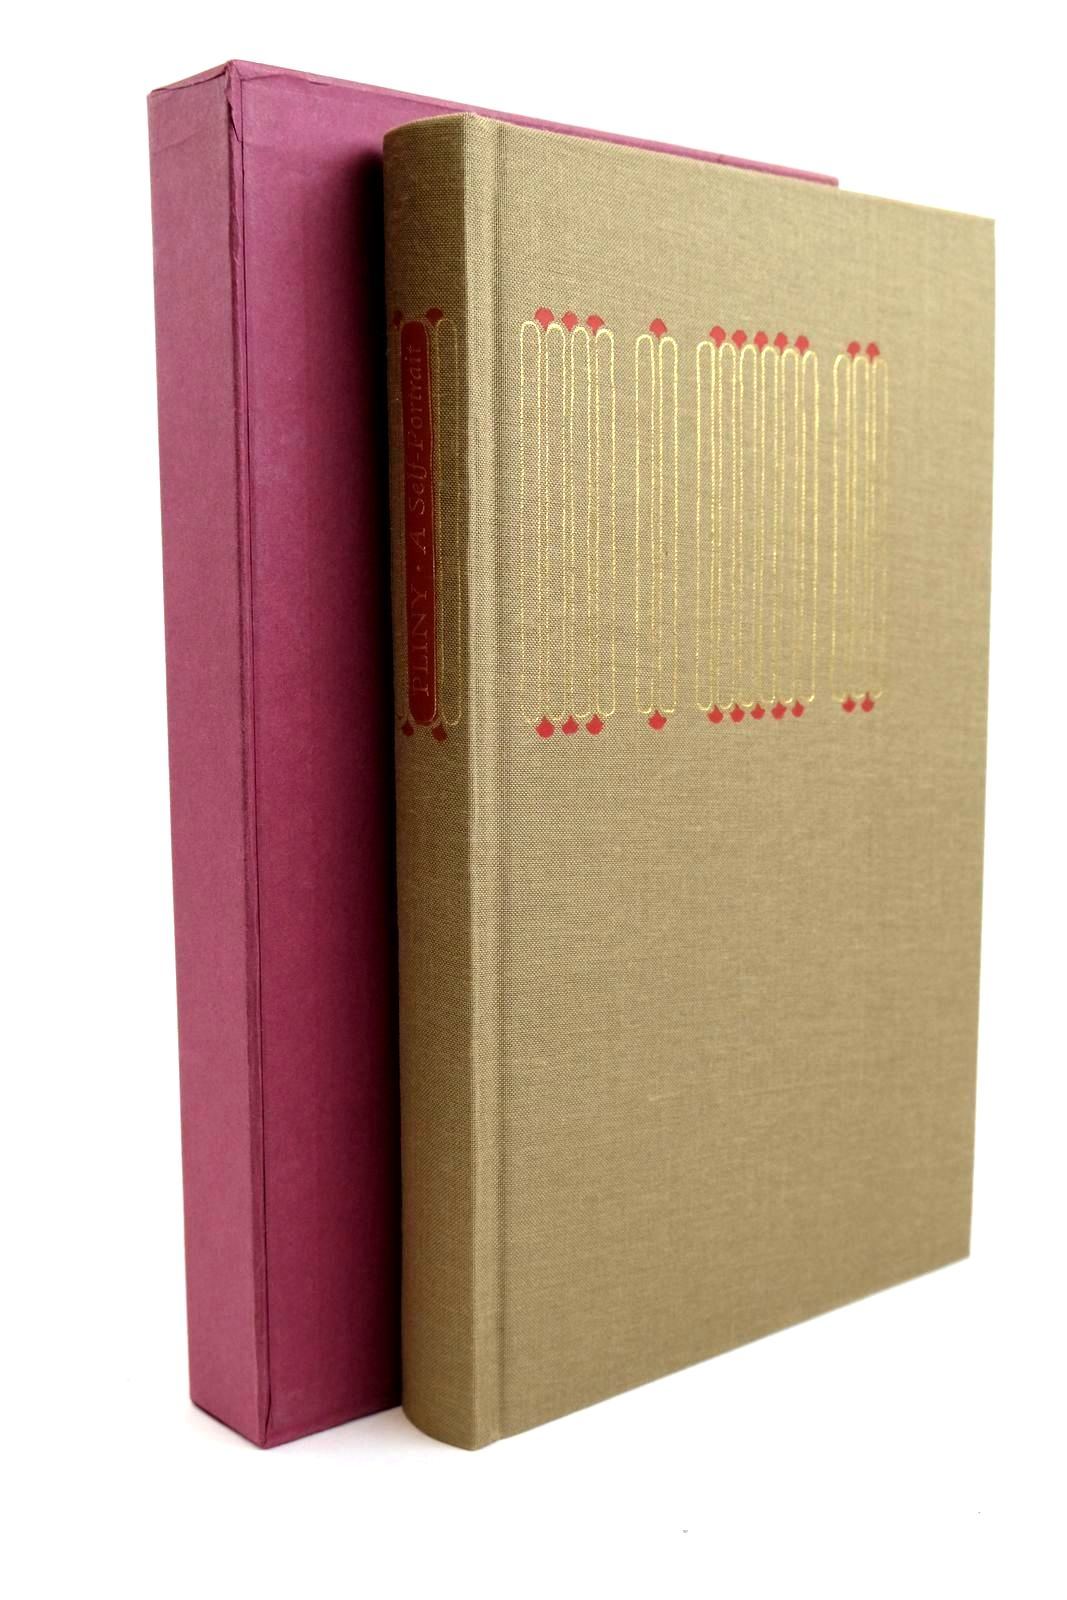 Photo of PLINY A SELF PORTRAIT IN LETTERS written by Pliny,  Radice, Betty published by Folio Society (STOCK CODE: 1321576)  for sale by Stella & Rose's Books